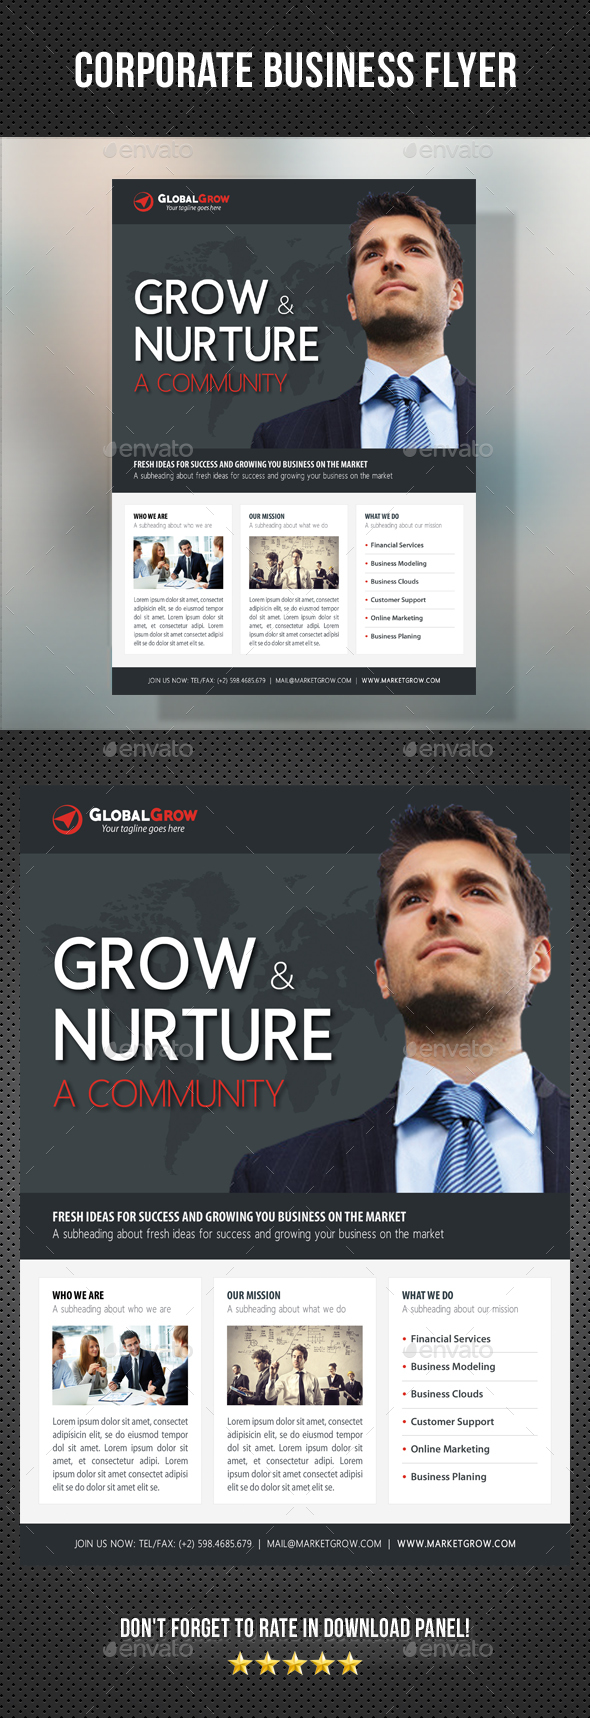 Corporate Business Flyer 12 - Corporate Flyers